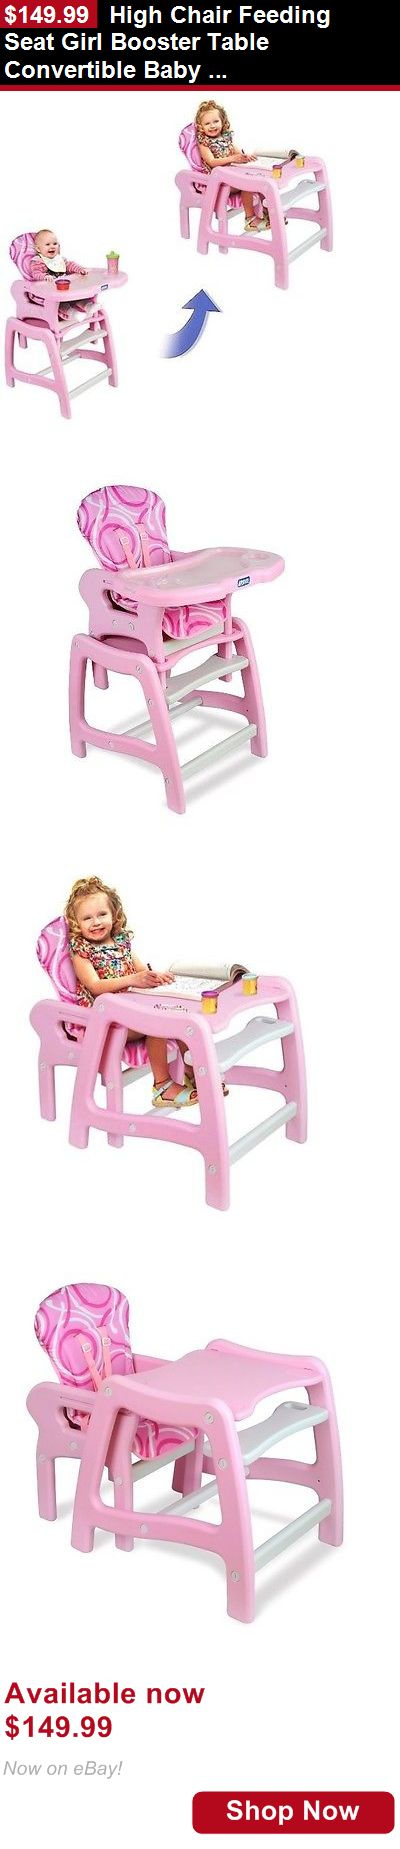 Baby High Chairs: High Chair Feeding Seat Girl Booster Table Convertible Baby Toddle Gift Portable BUY IT NOW ONLY: $149.99